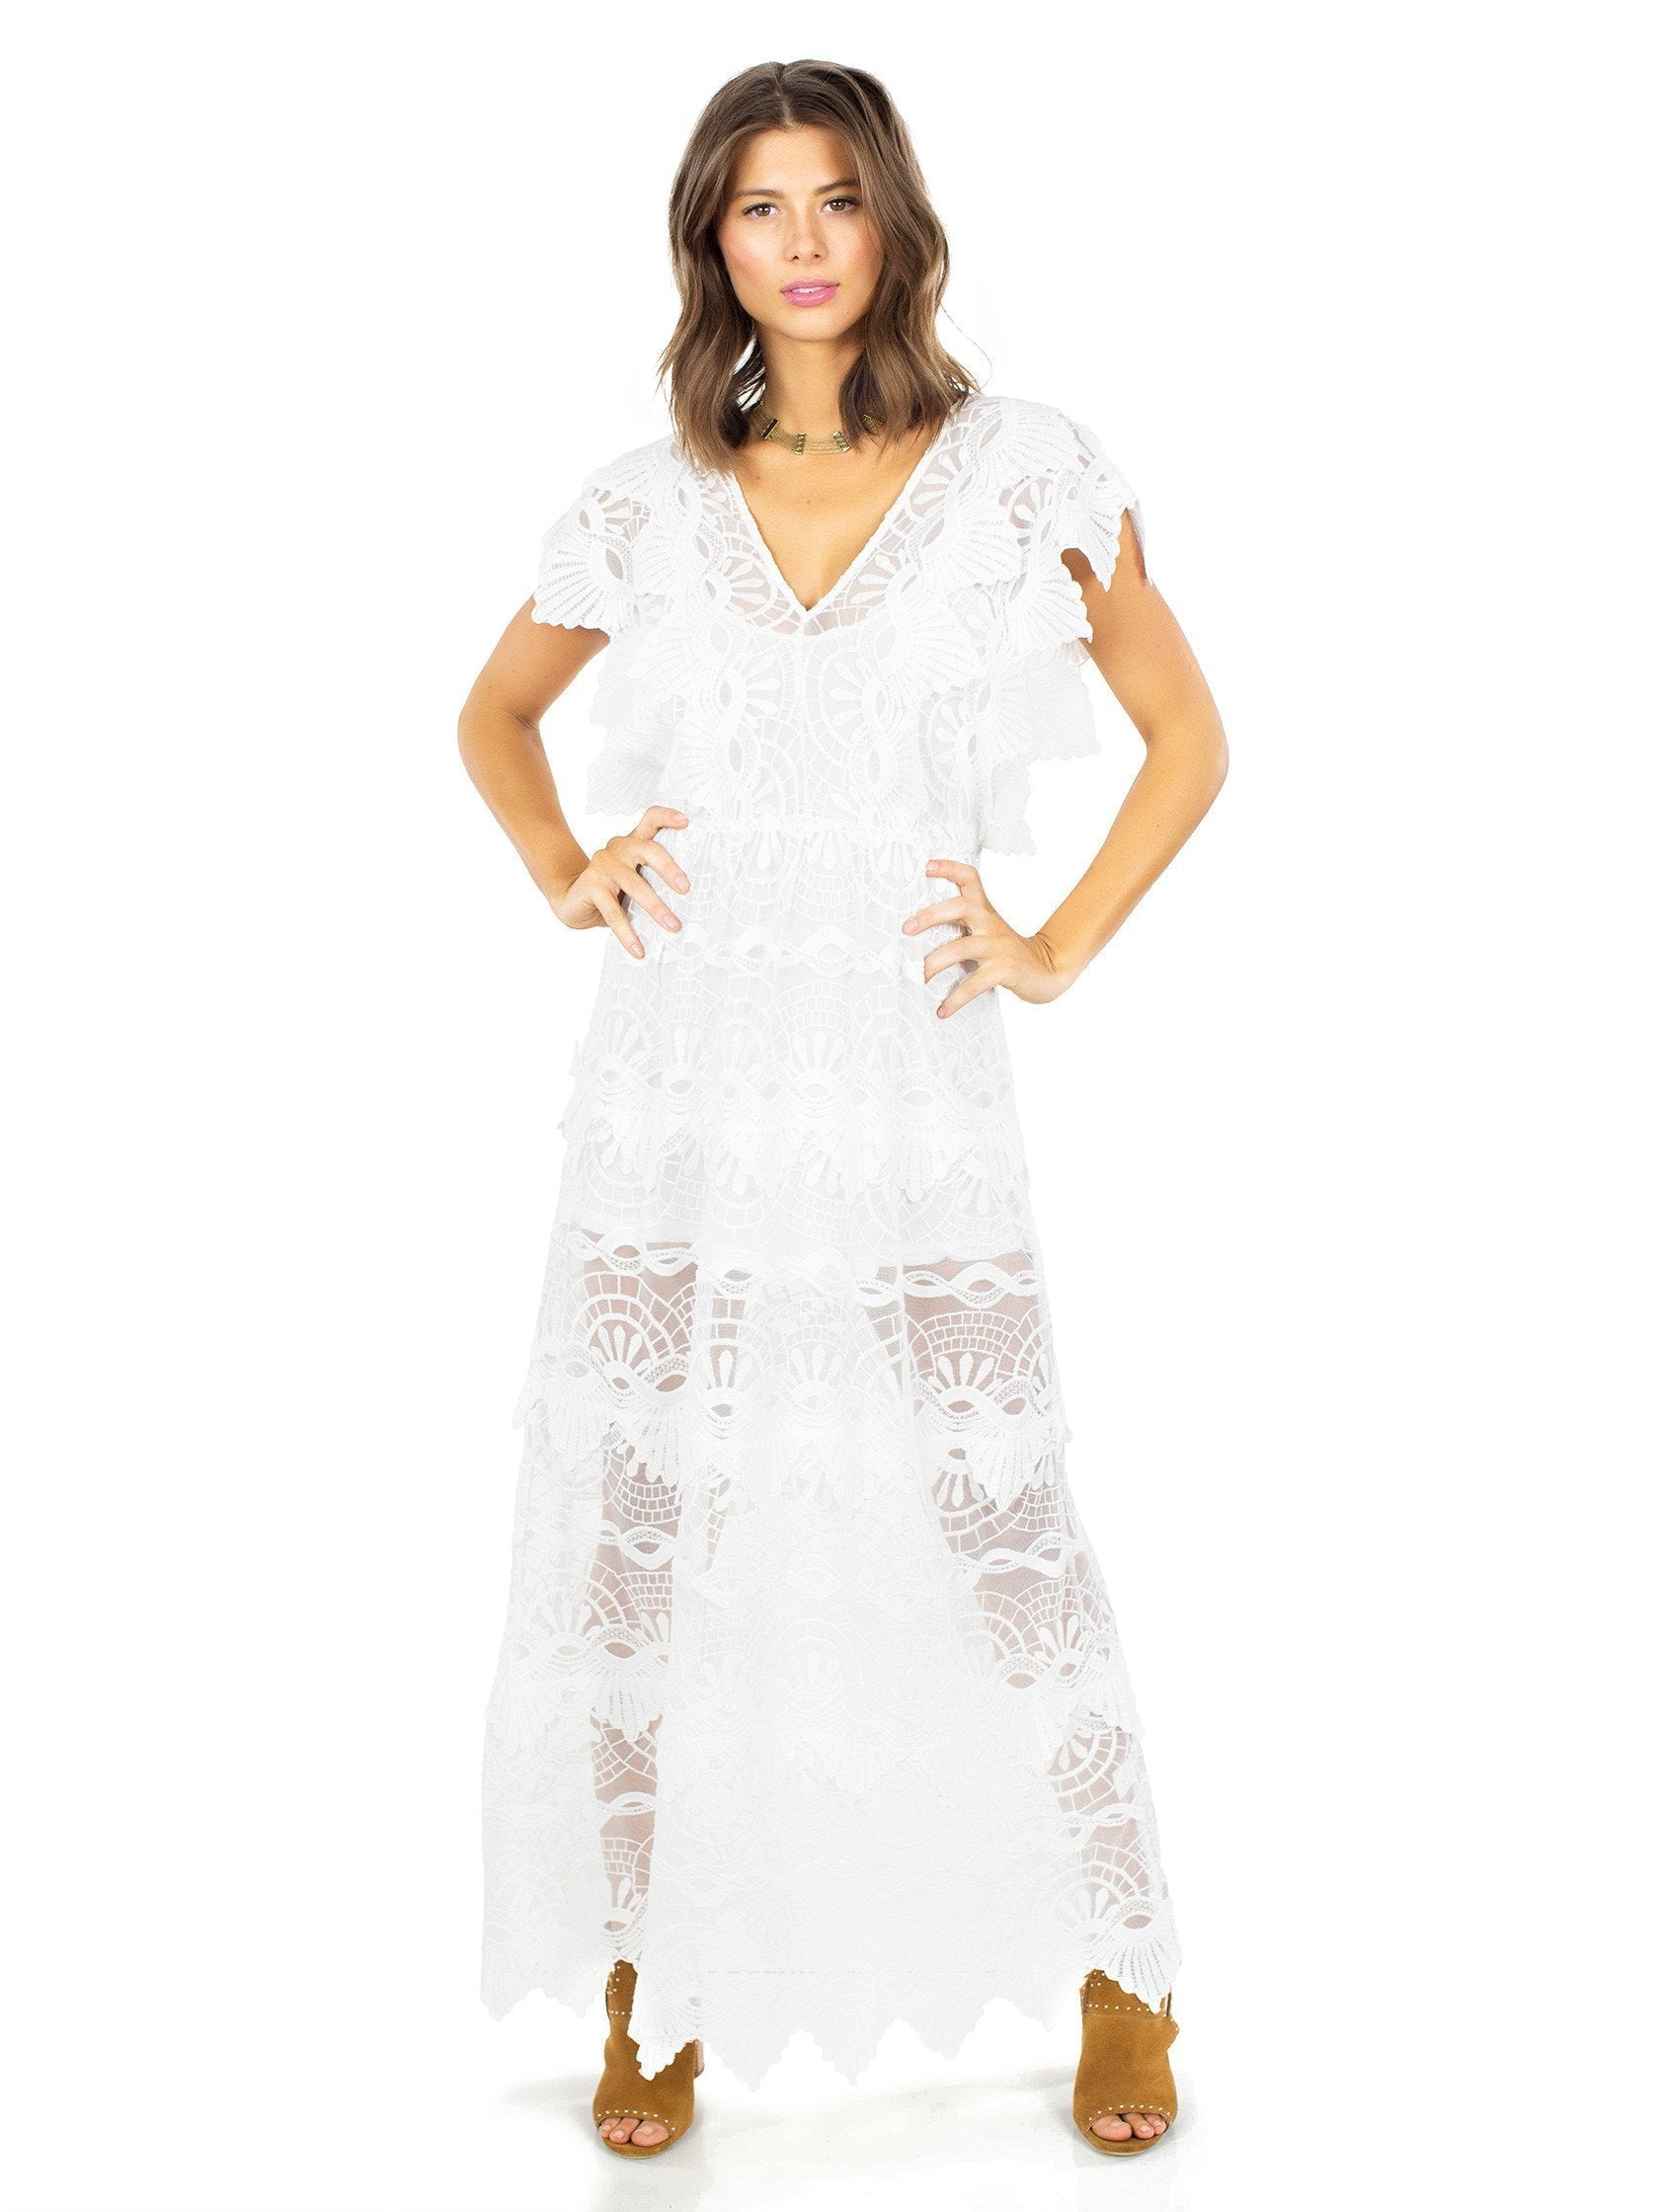 Girl outfit in a dress rental from Nightcap Clothing called Mayan Lace Gown